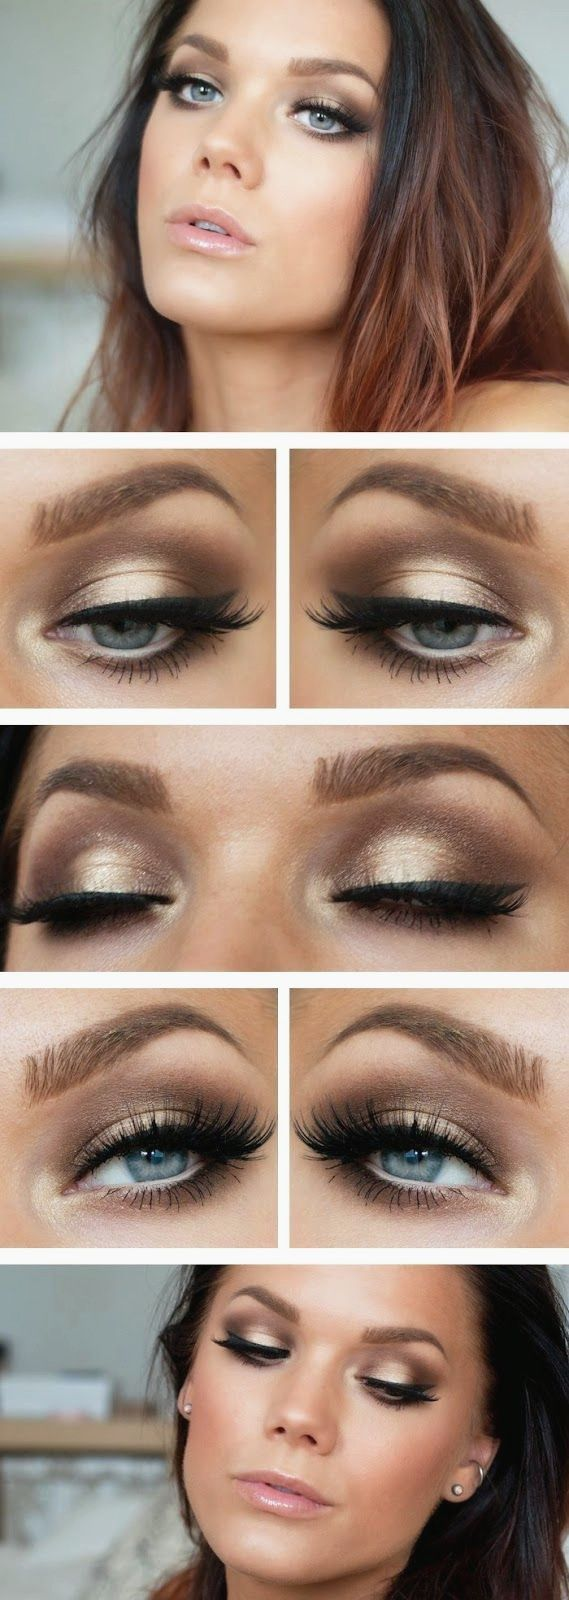 10 Eye Makeup Ideas That You Will Love10